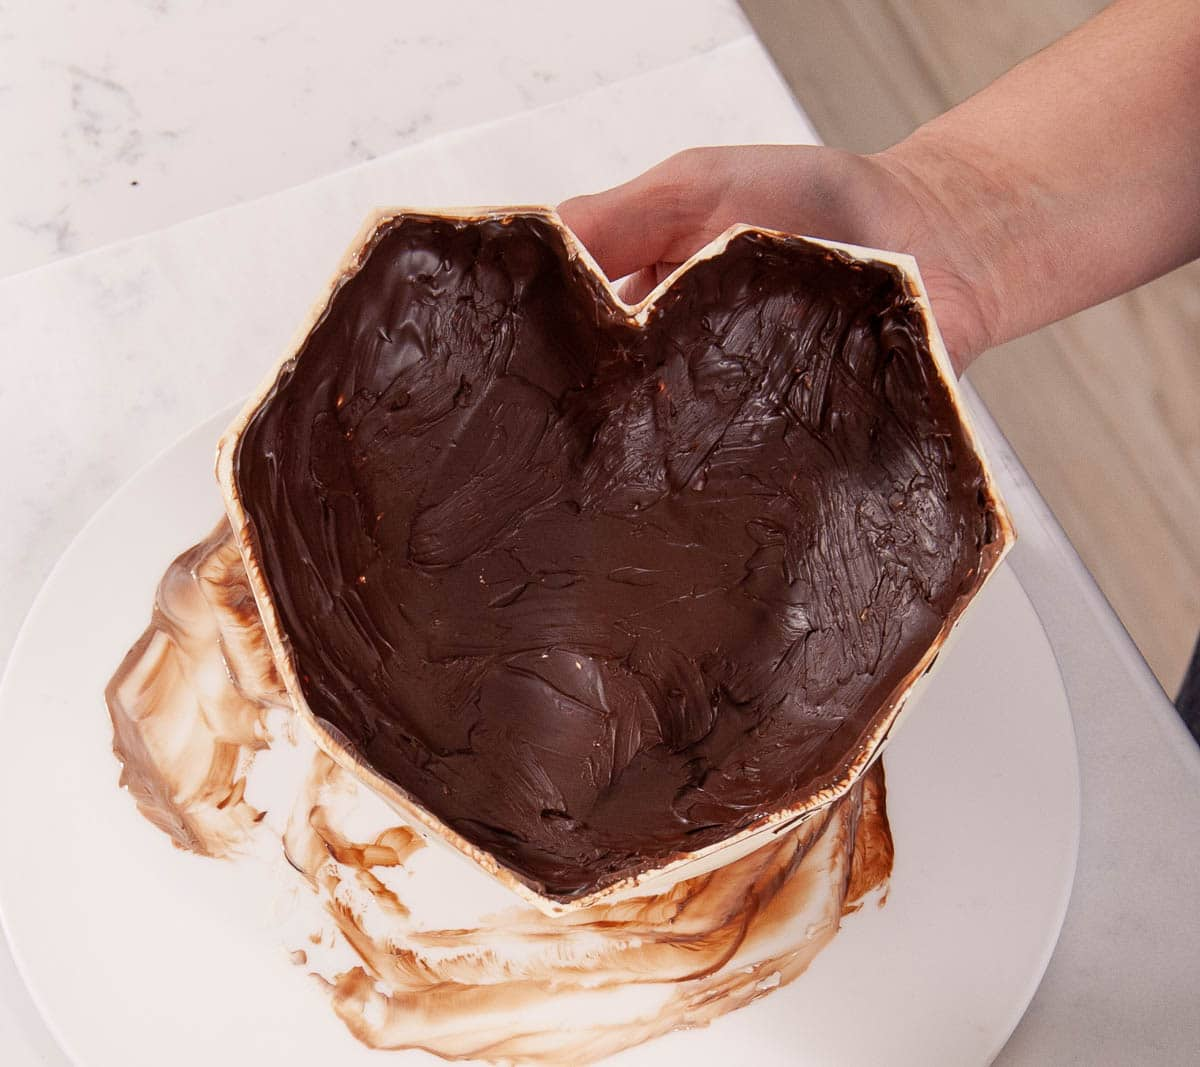 hand holding chocolate breakable heart